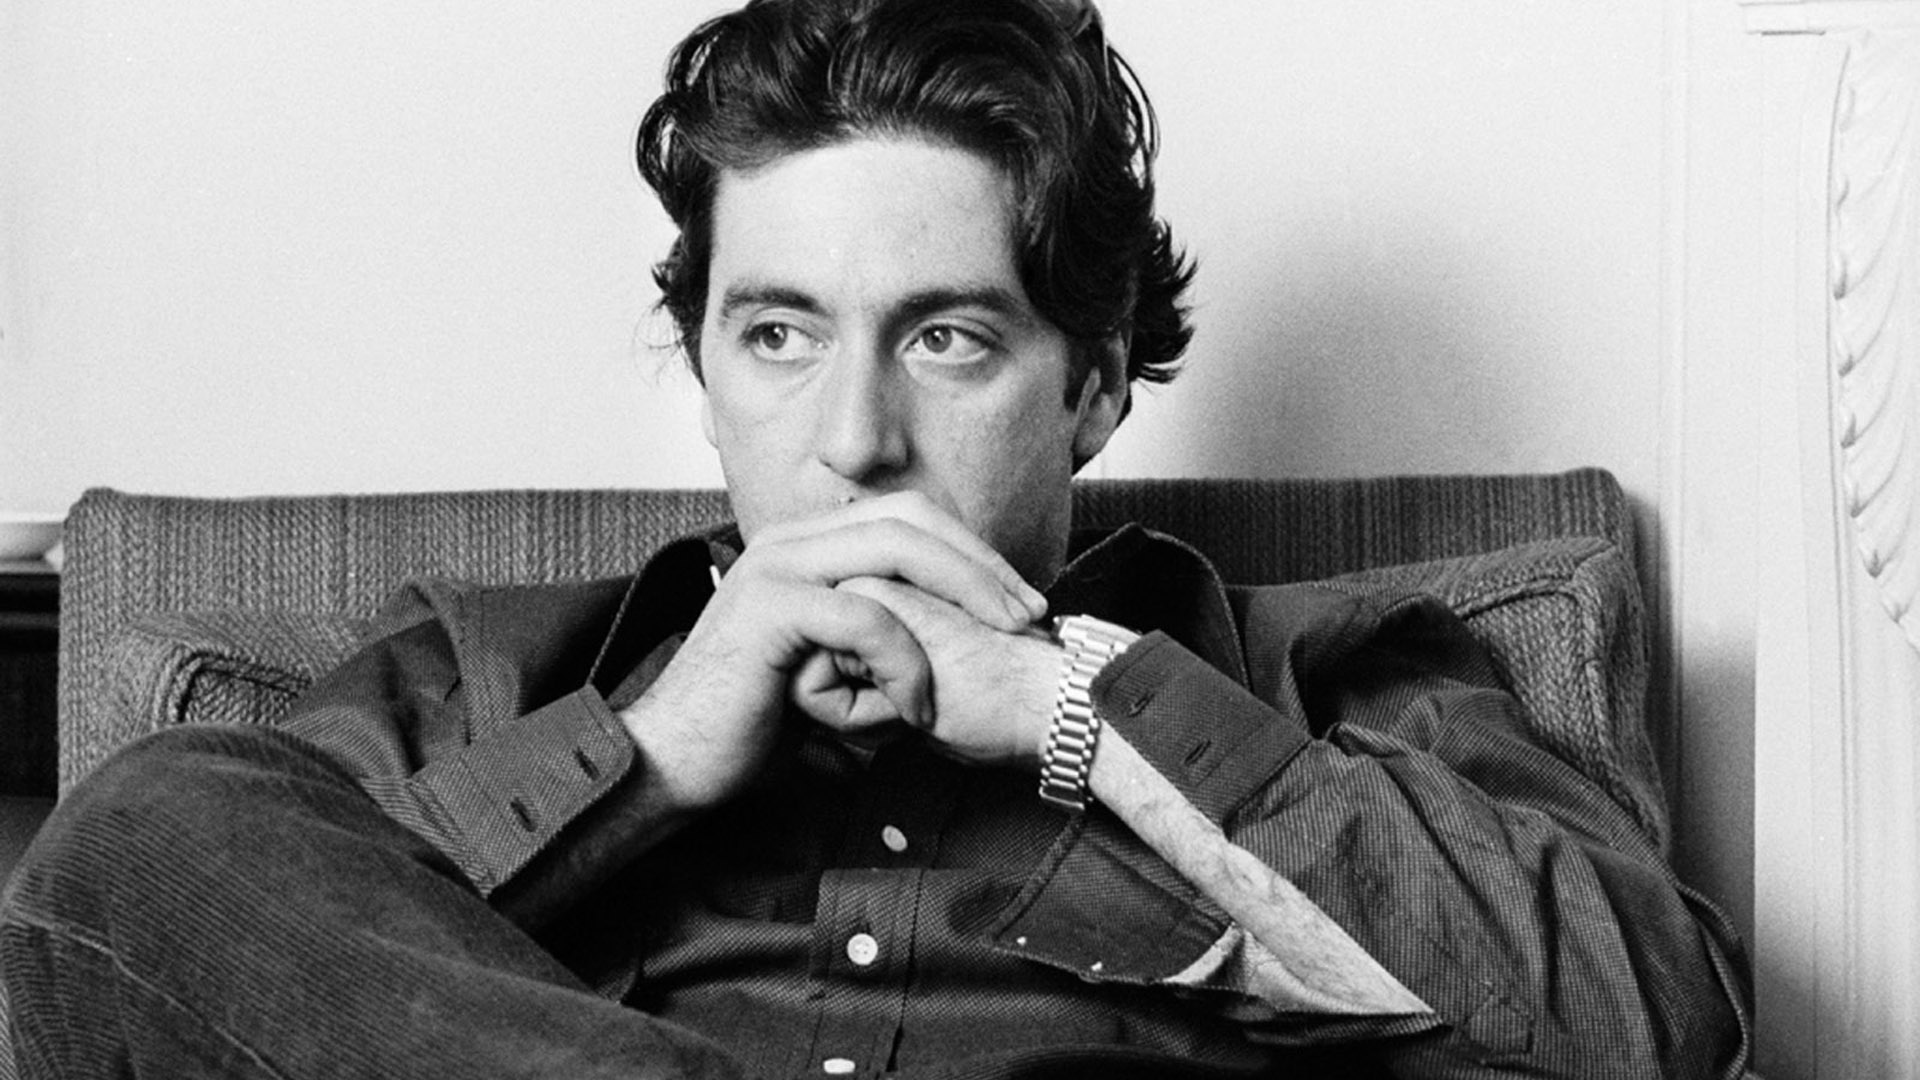 Al Pacino Wallpaper 1920x1080 61425